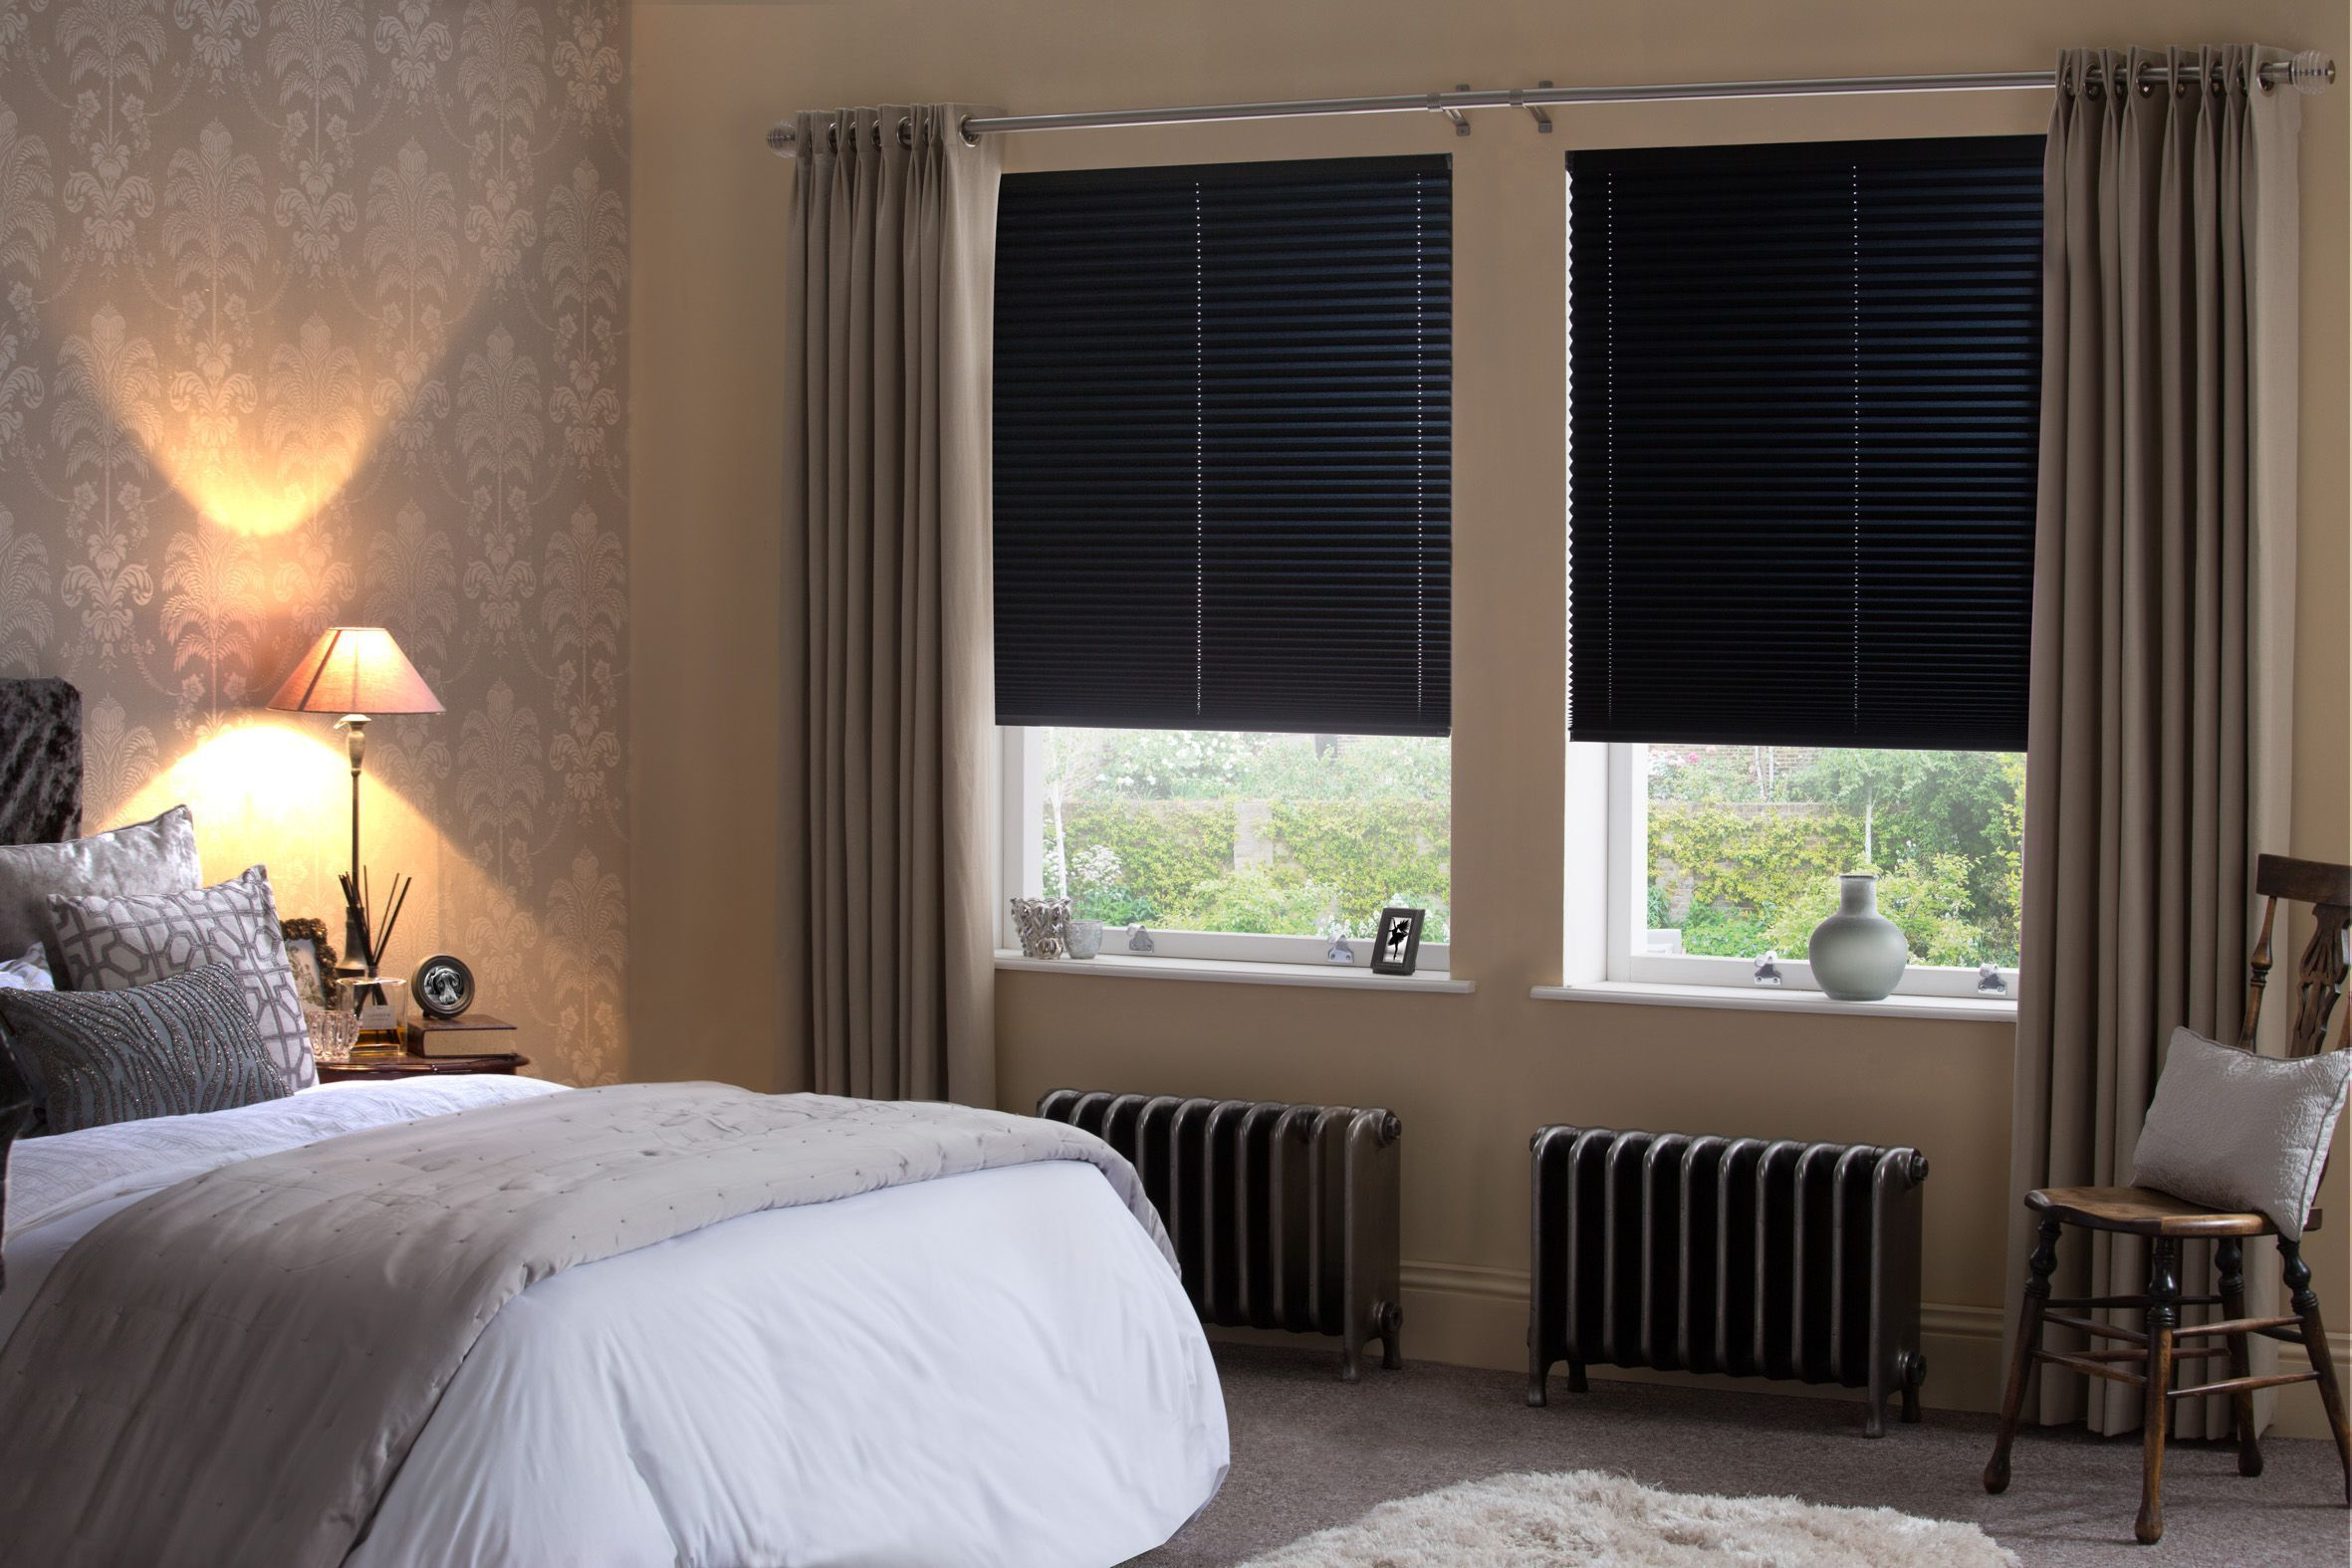 Pleated Black Out Bedroom Blinds From Style Studio Bedroom Blinds Best Blinds For Summer Black Blind Living Room Blinds Blinds Design Modern Window Dressing